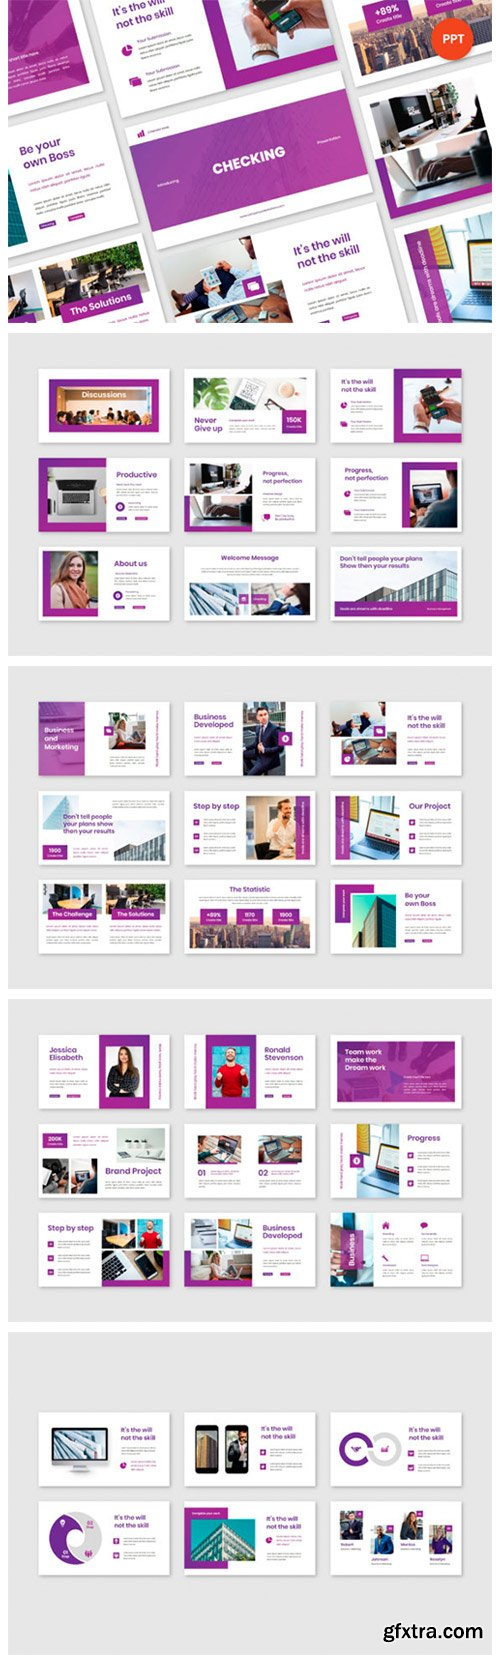 Checking Business Plan Powerpoint 6774203